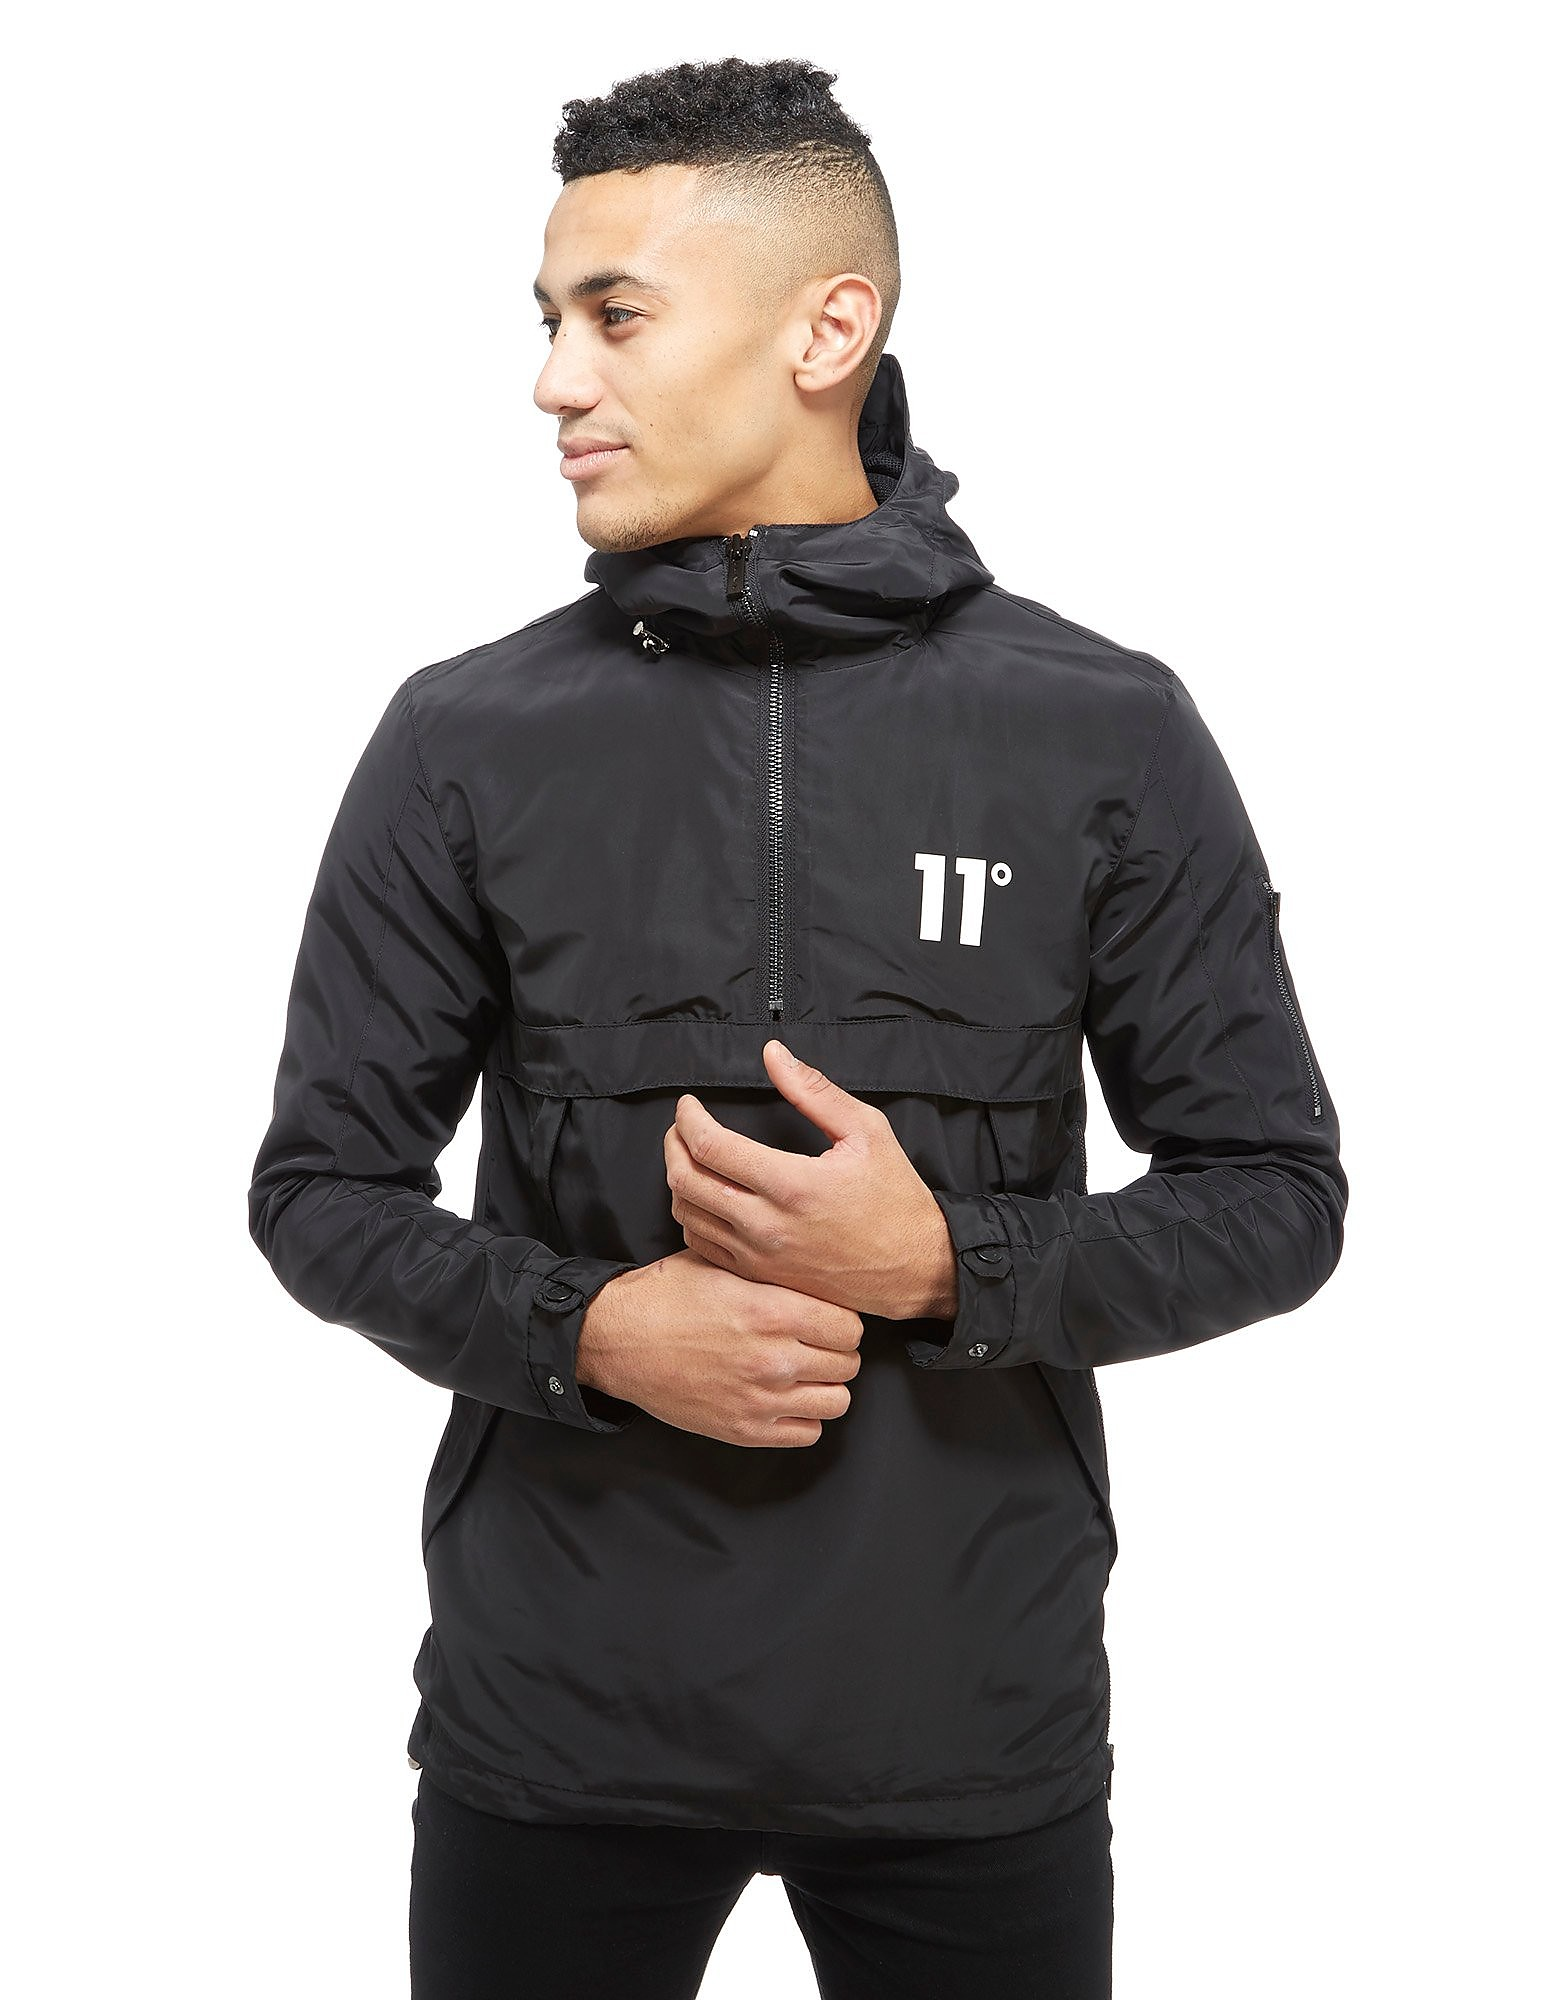 11 Degrees Hurricane Windbreaker 1/4 Zip Jacket